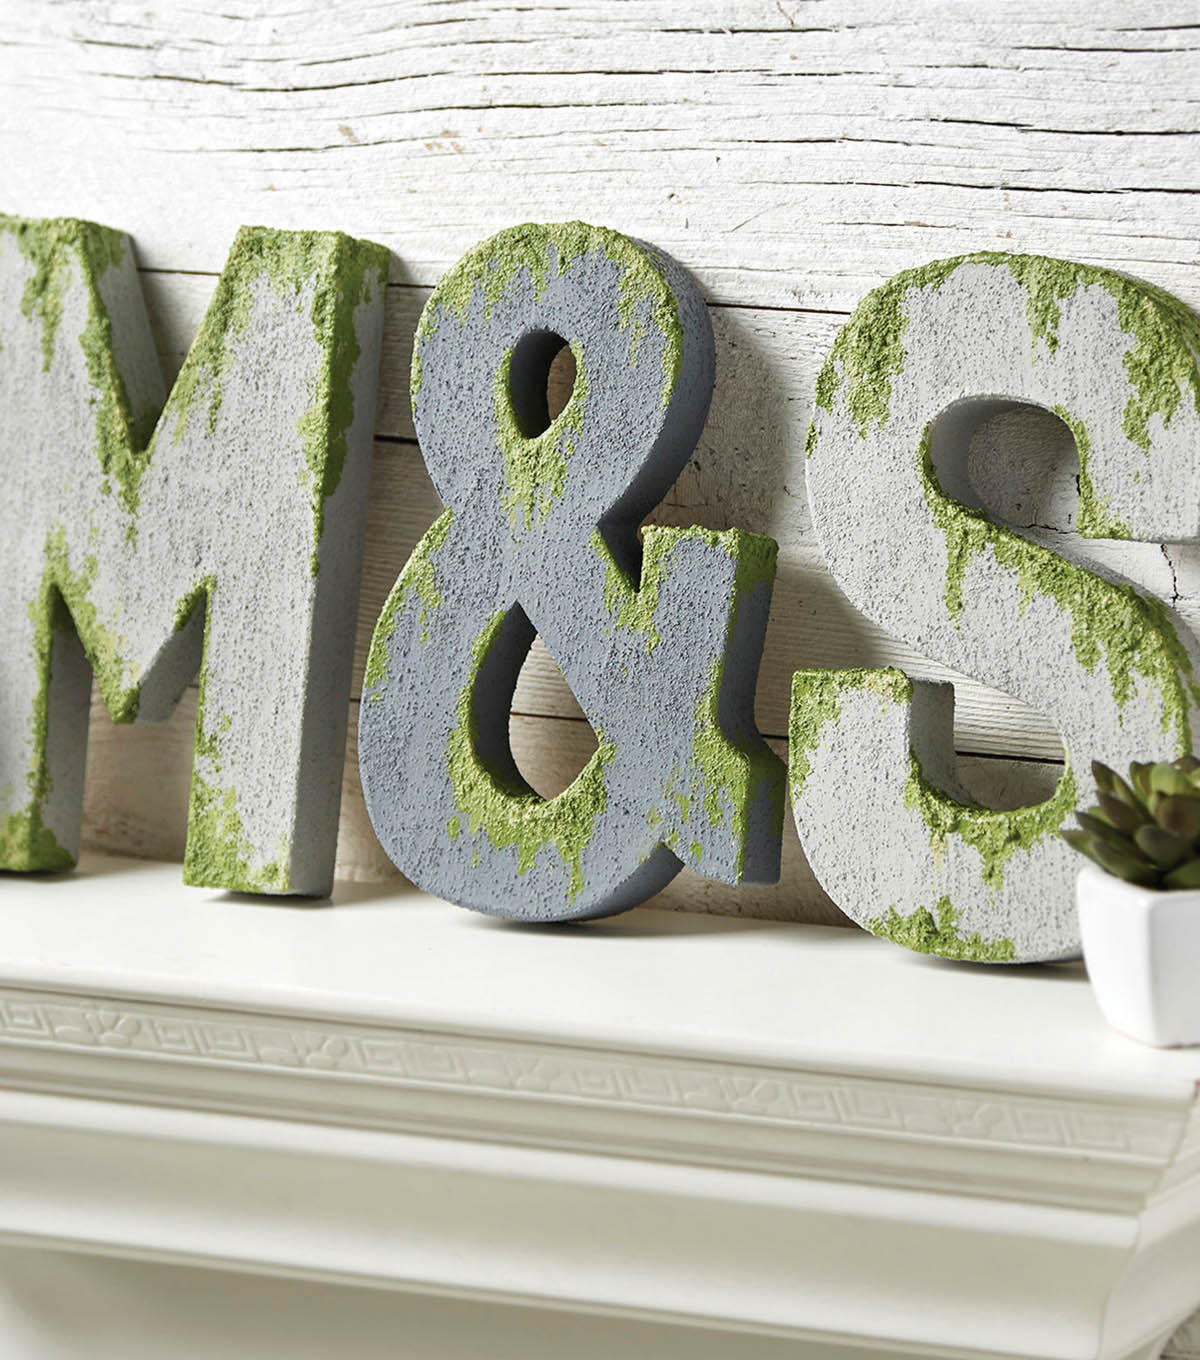 How To Make Concrete Painted Letters